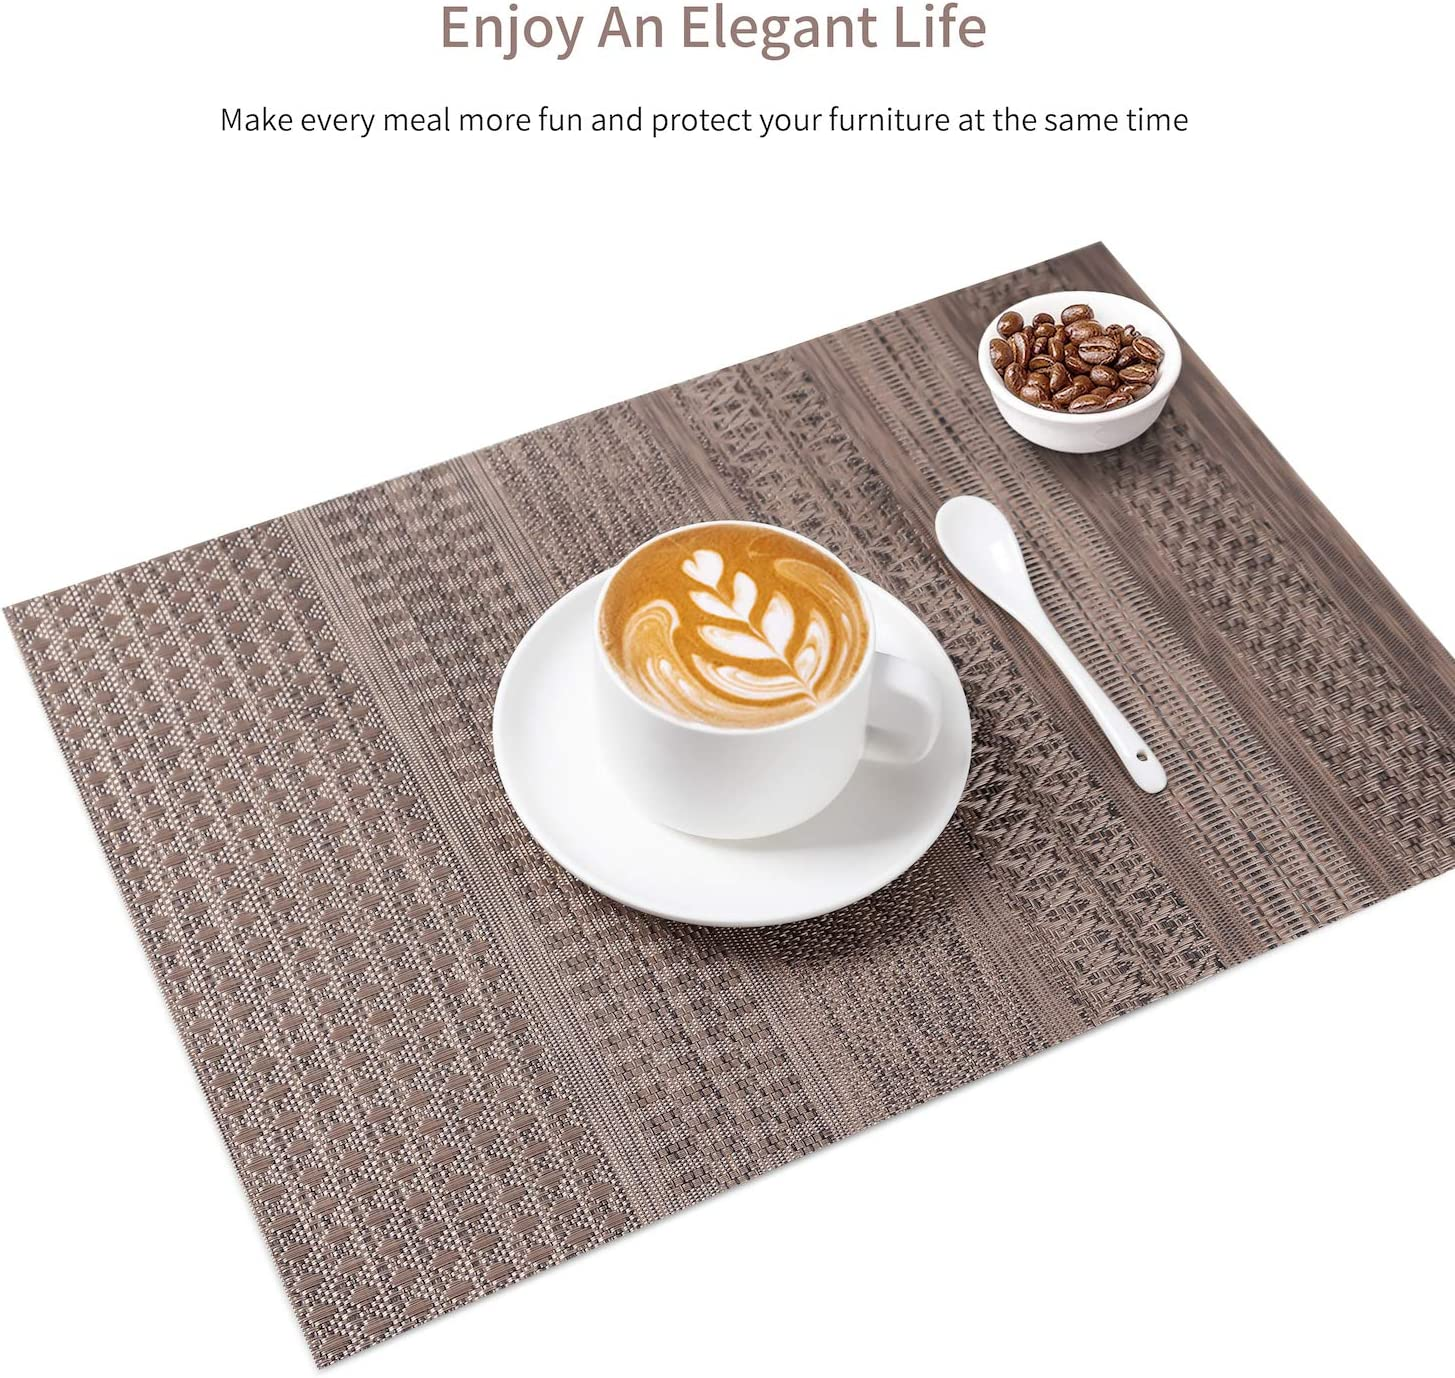 SD SENDAY Placemats, Set of 8 Heat-Resistant Placemats Stain Resistant Anti-Skid Placemats for Kitchen Table, Washable Durable PVC Table Mats Woven Vinyl Placemats: Home & Kitchen